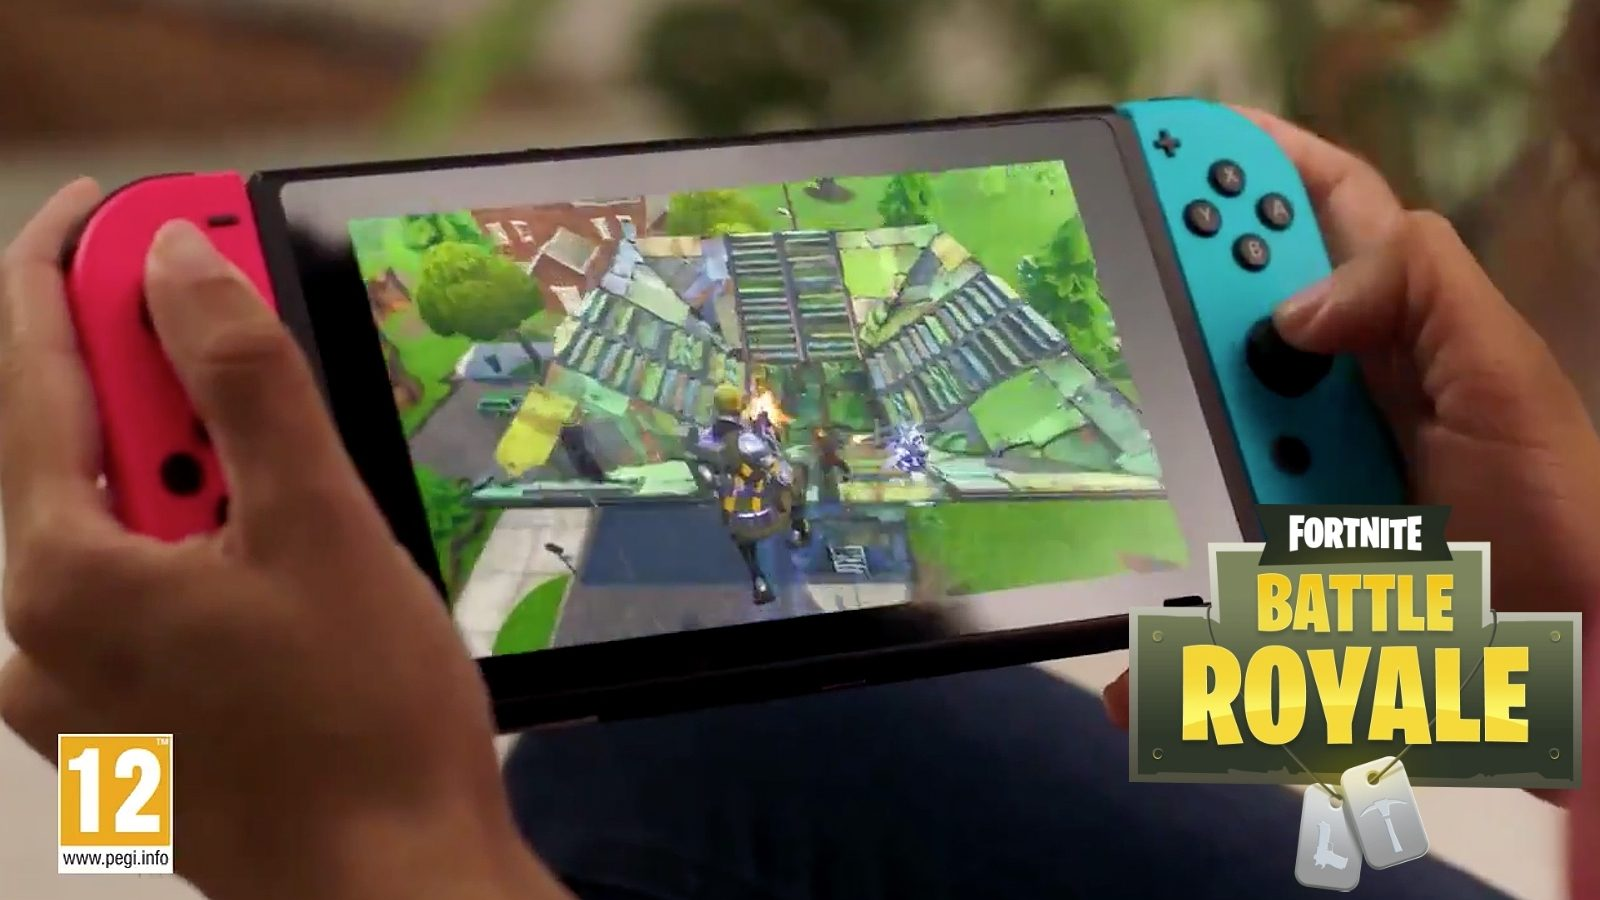 How to build in fortnite nintendo switch